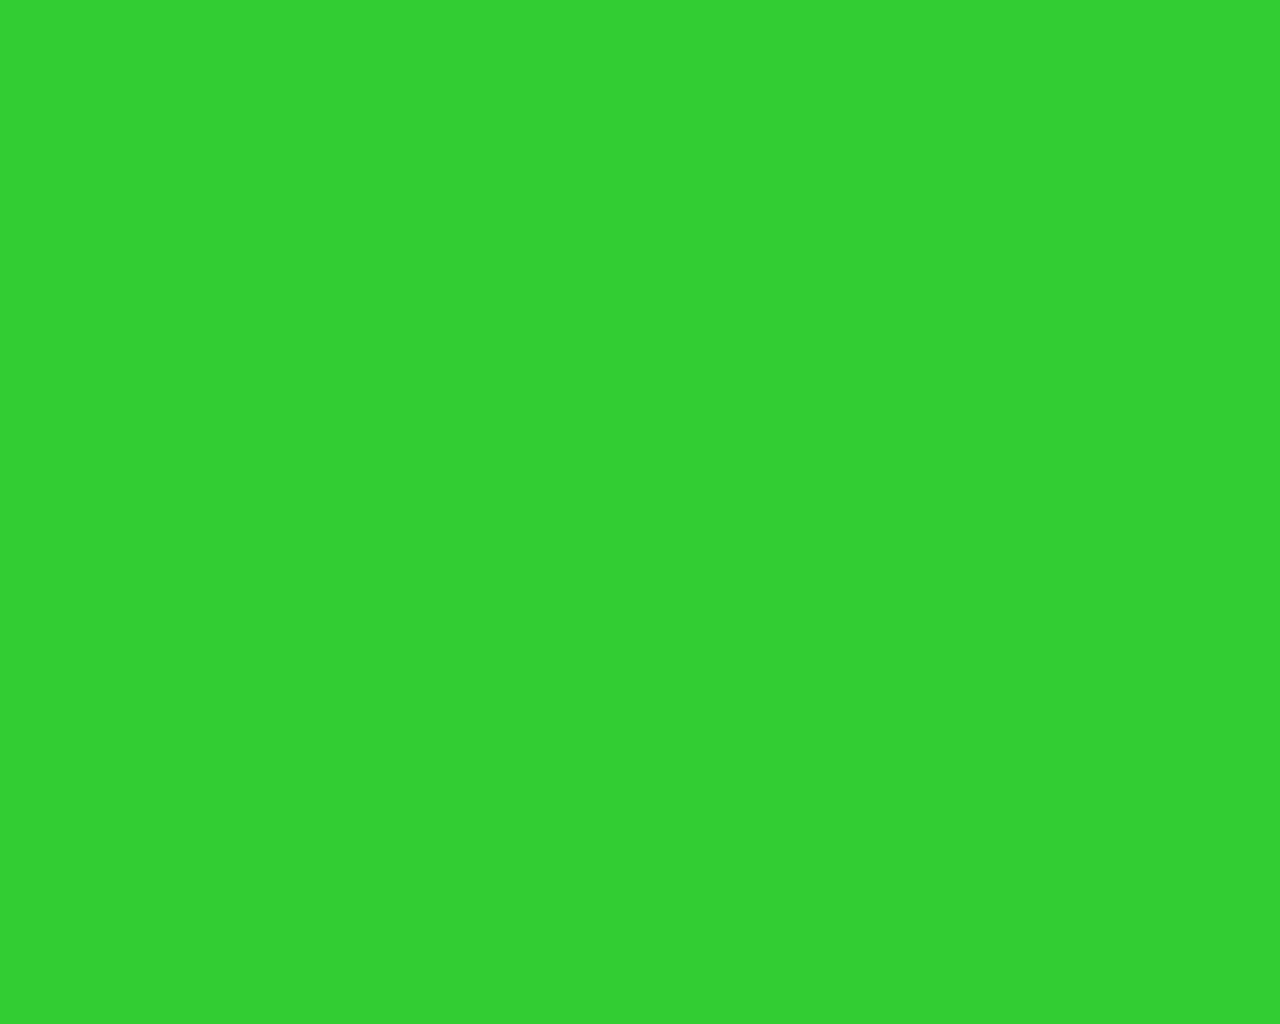 Free Download Lime Green Backgrounds 1280x1024 For Your